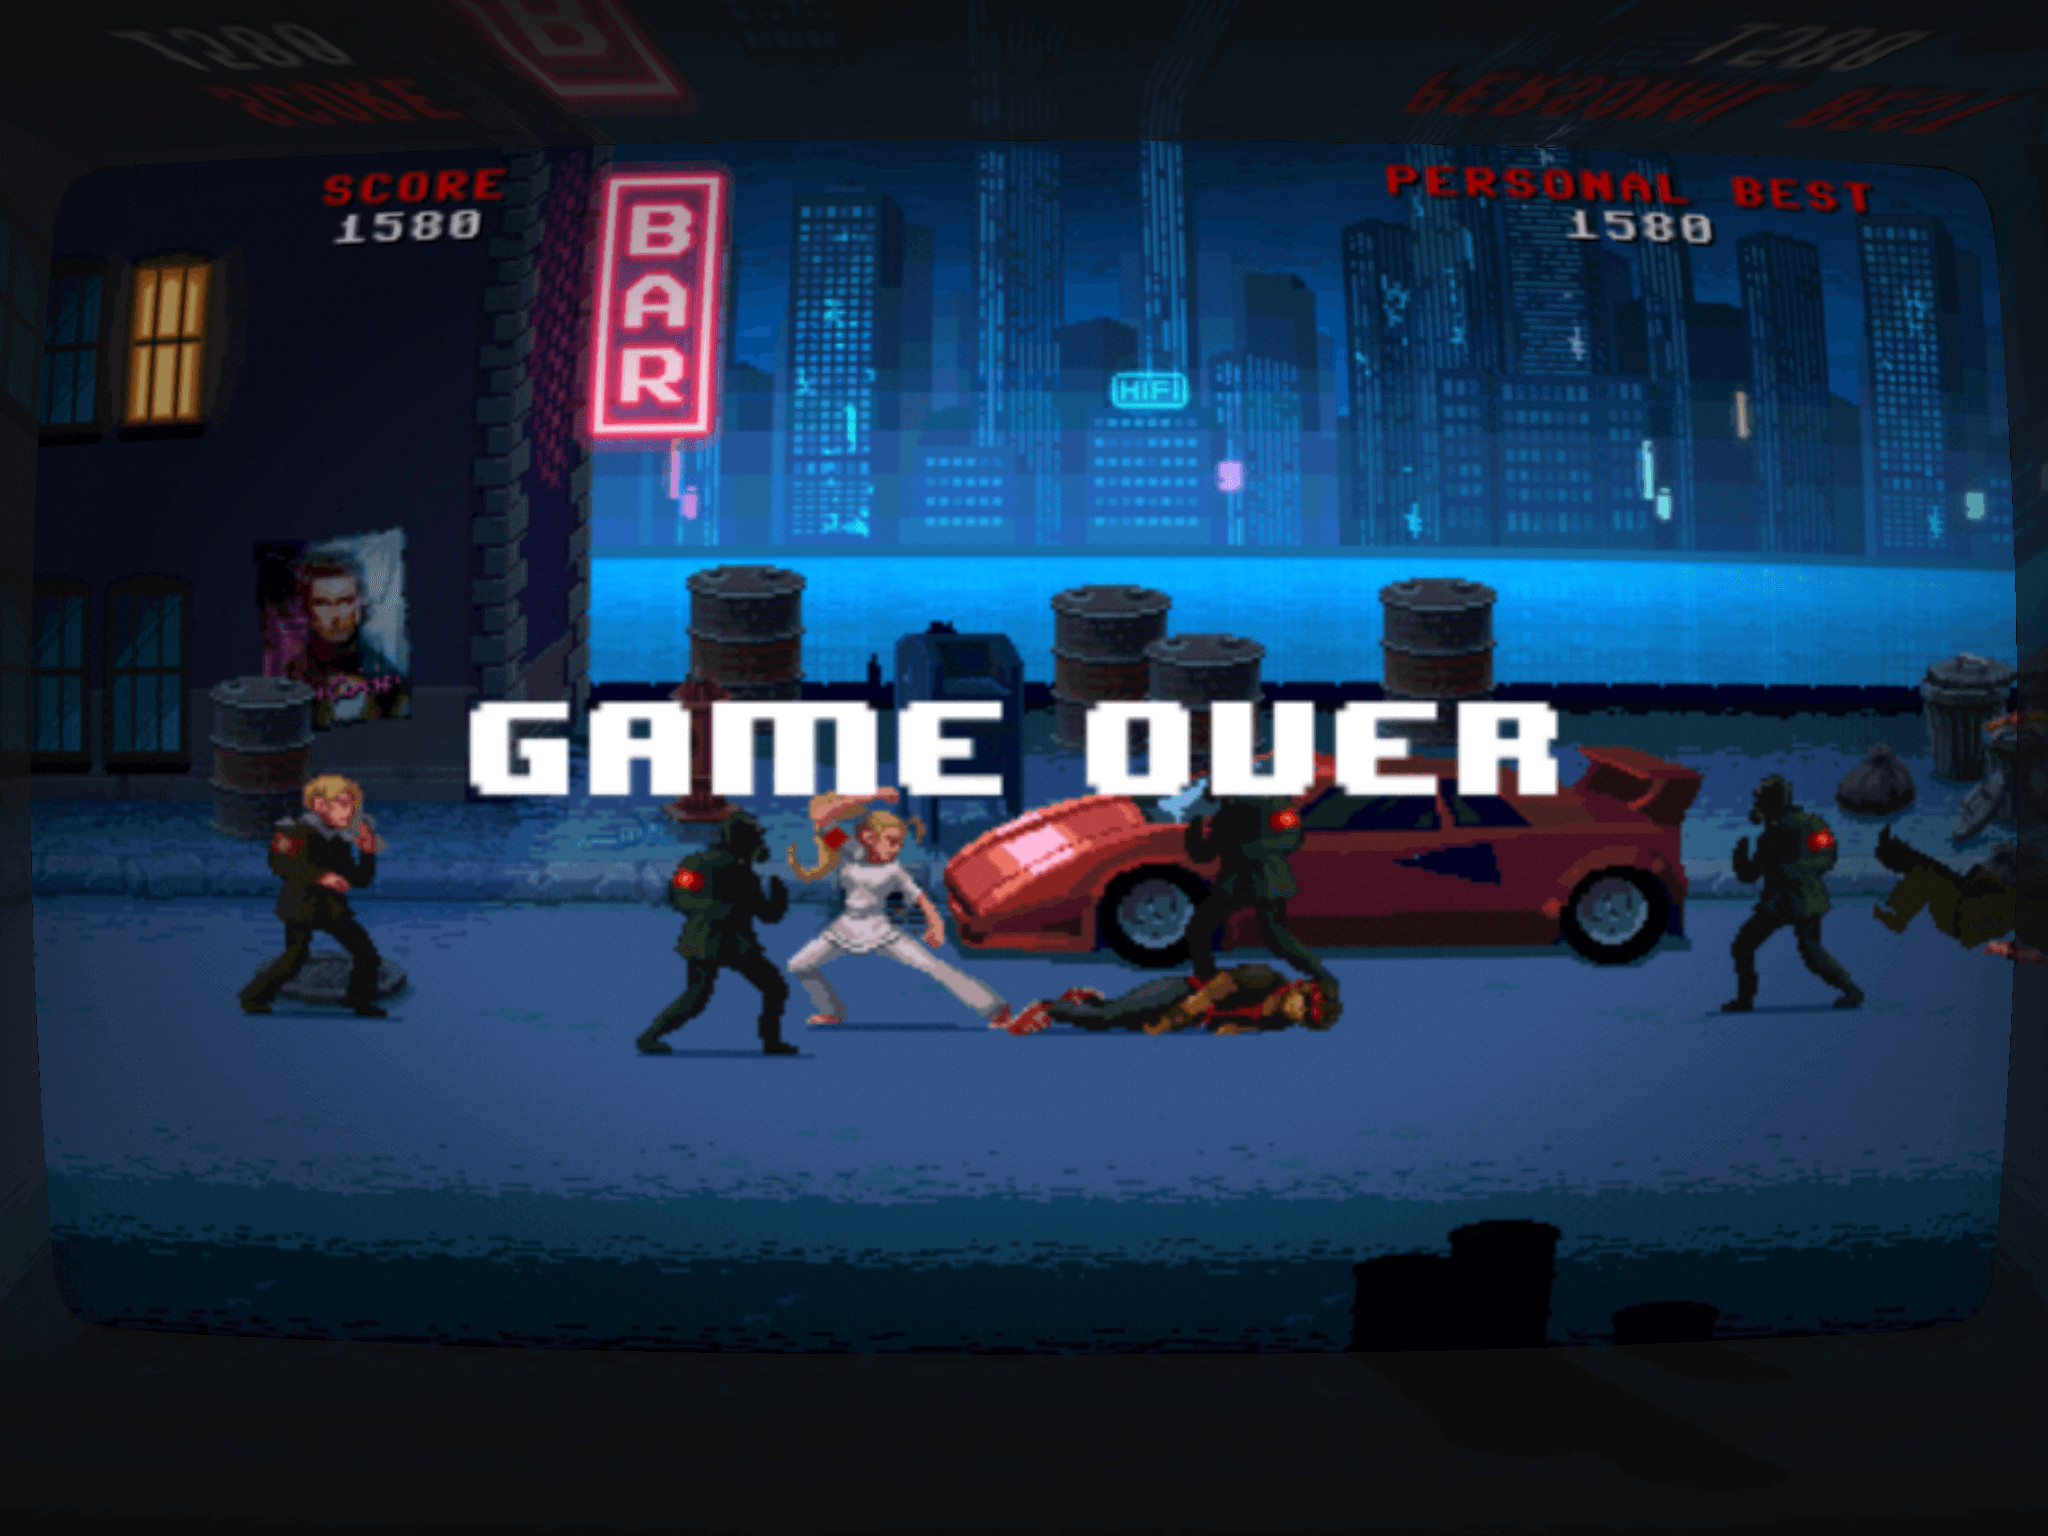 Fail fast, then get back into it – fast-paced arcade action at its